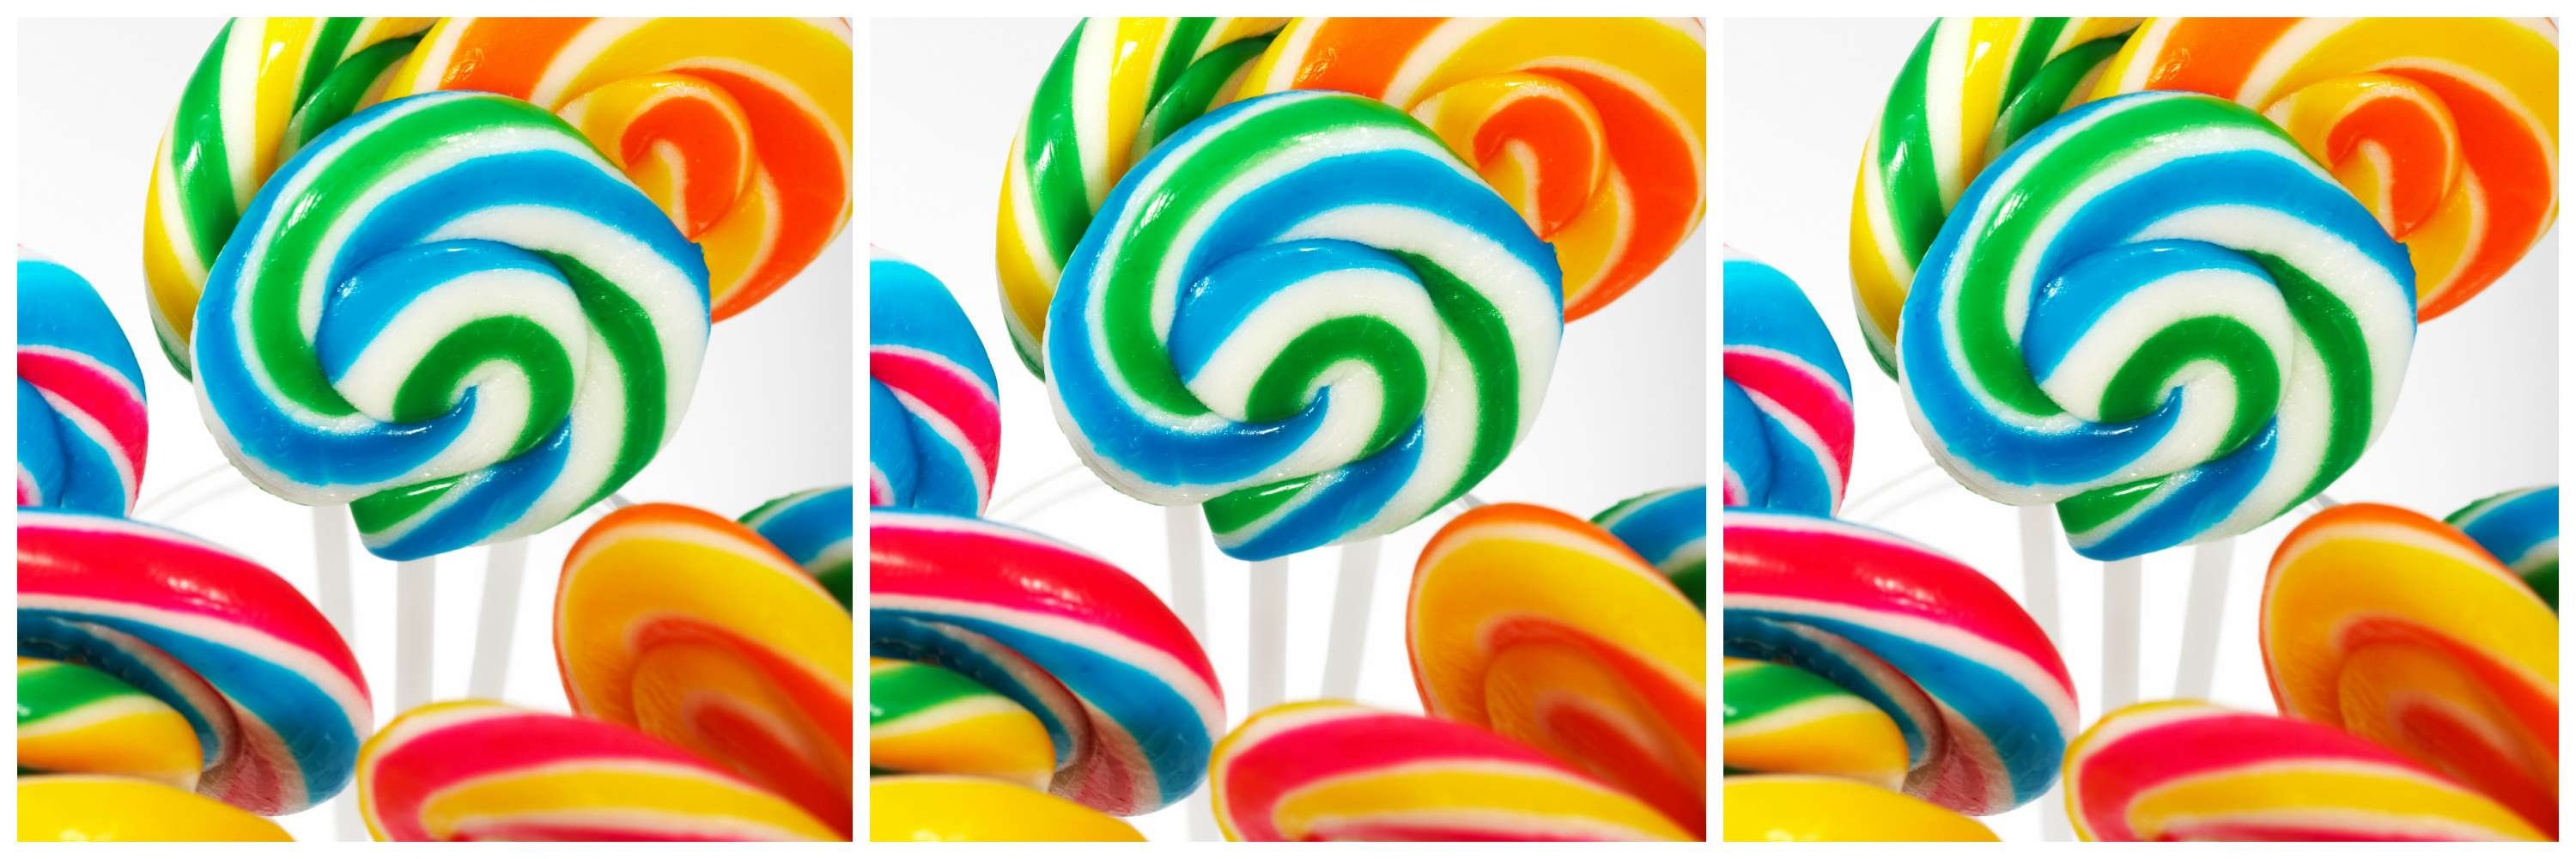 Lollipops (photo credit: Graphicstock.com)